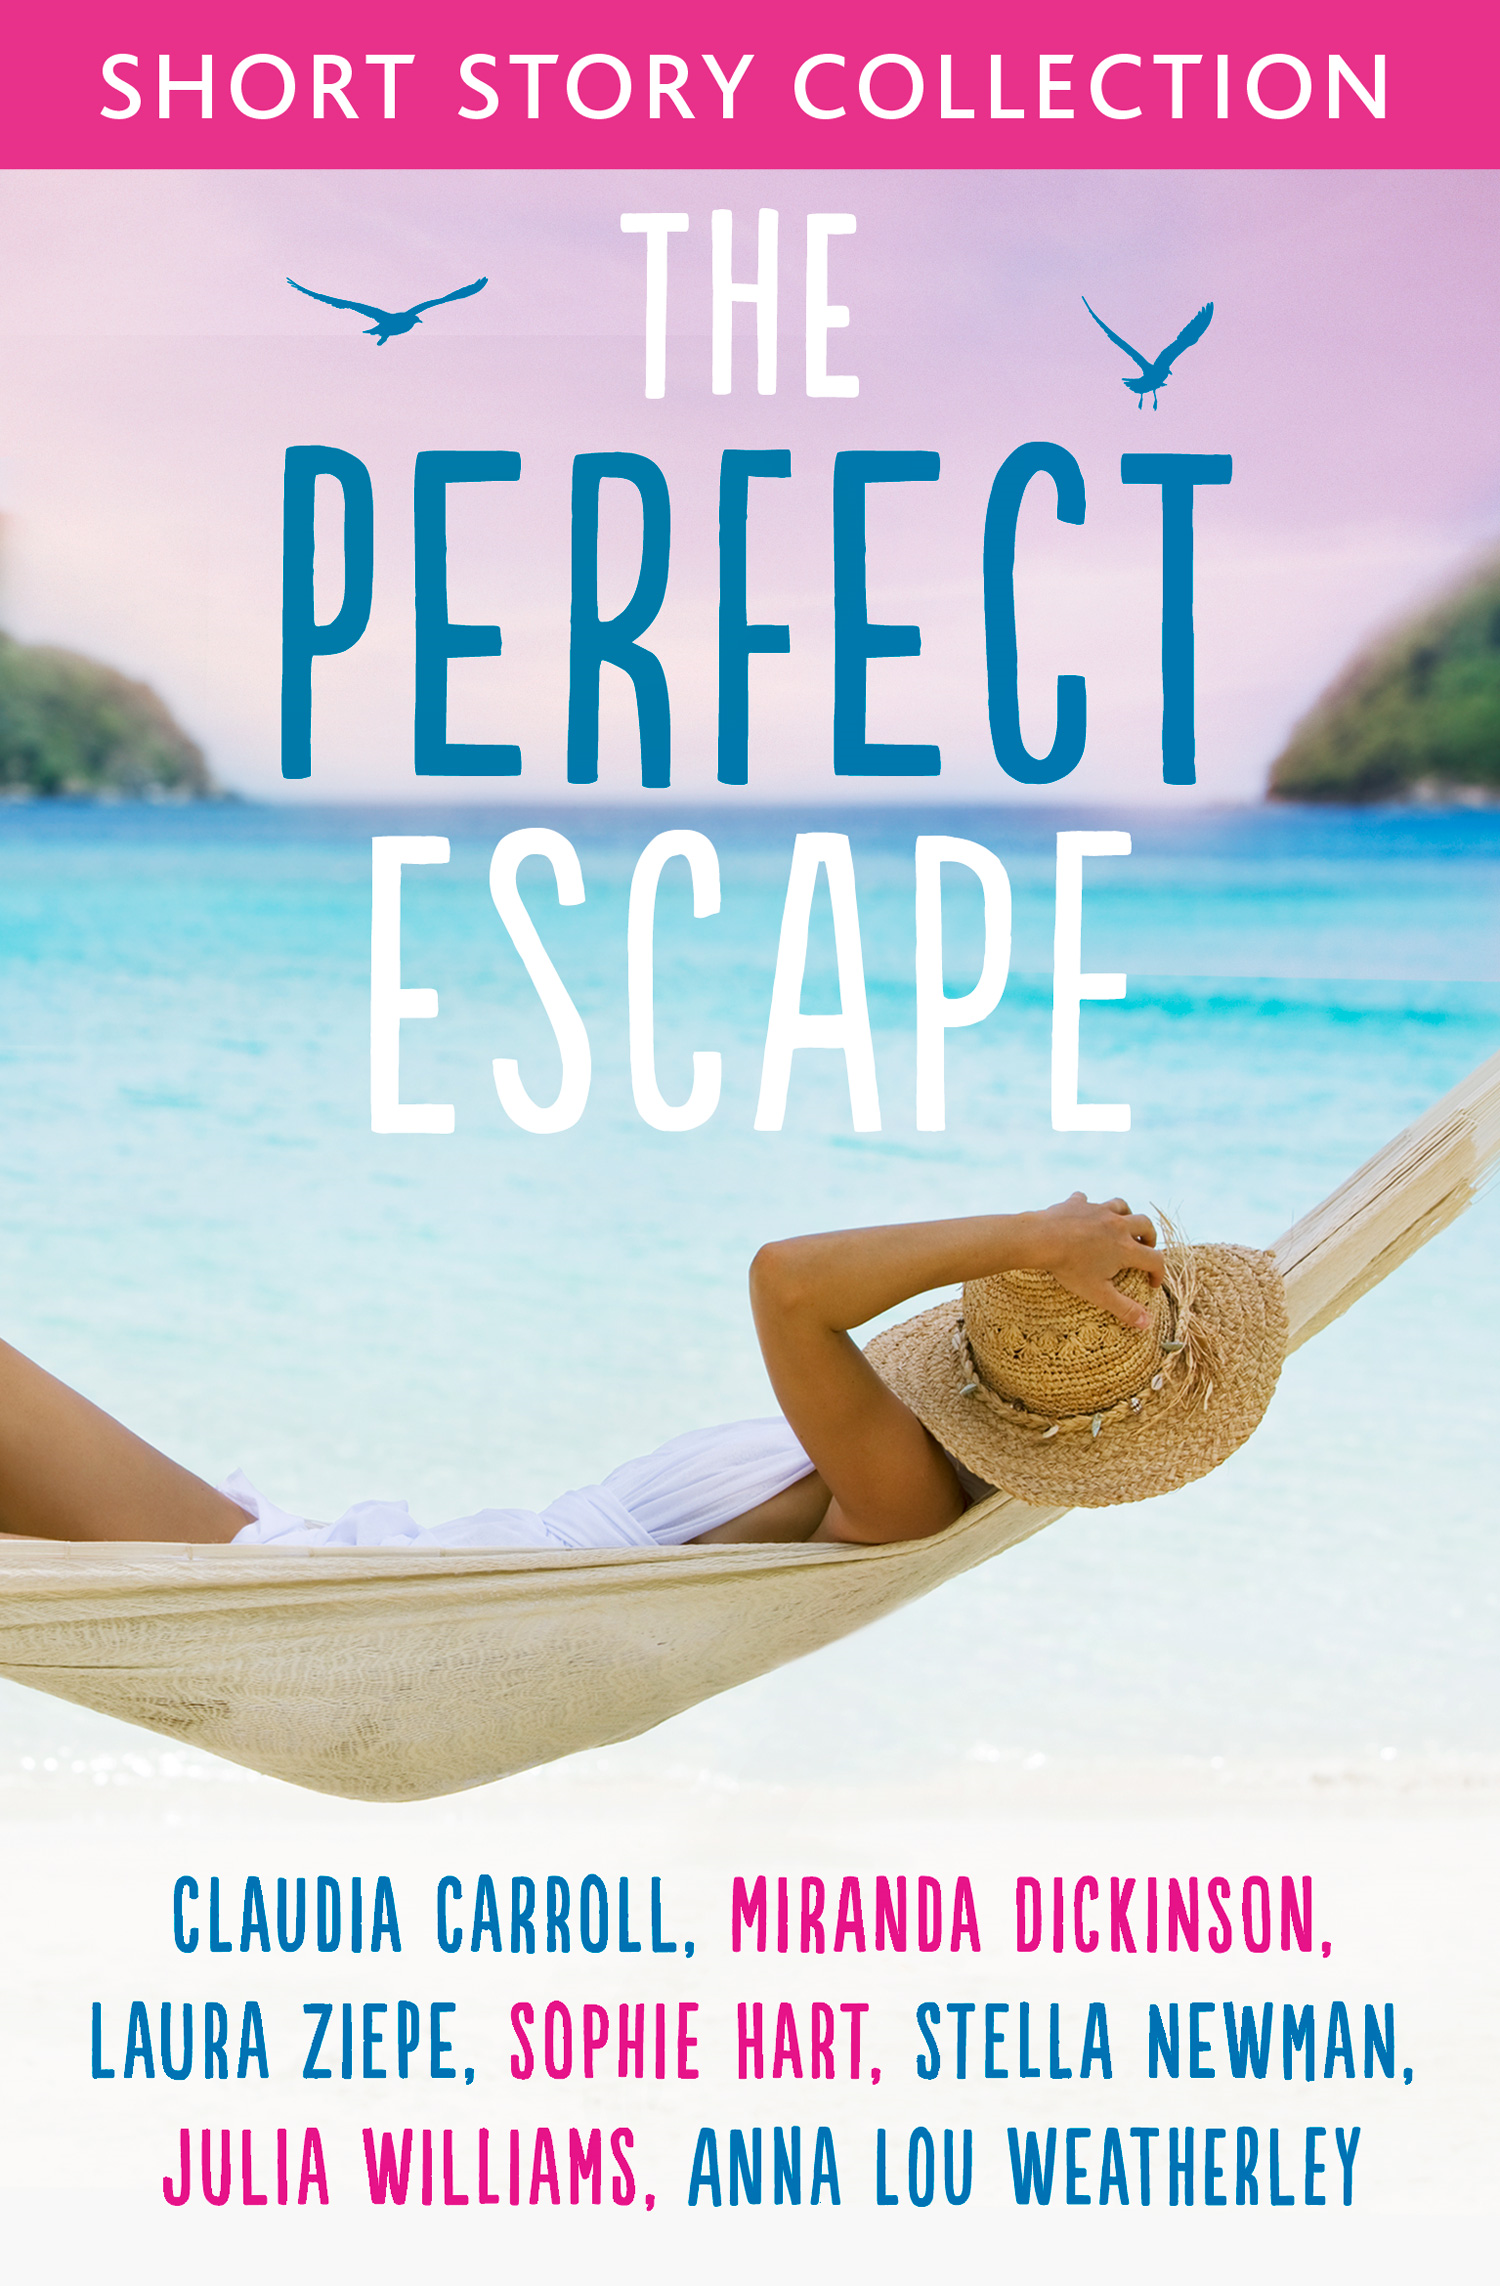 The Perfect Escape: Romantic short stories to relax with: Written by Claudia Carroll, Miranda Dickinson, Julia Williams, Stella Newman, Laura Ziepe, S